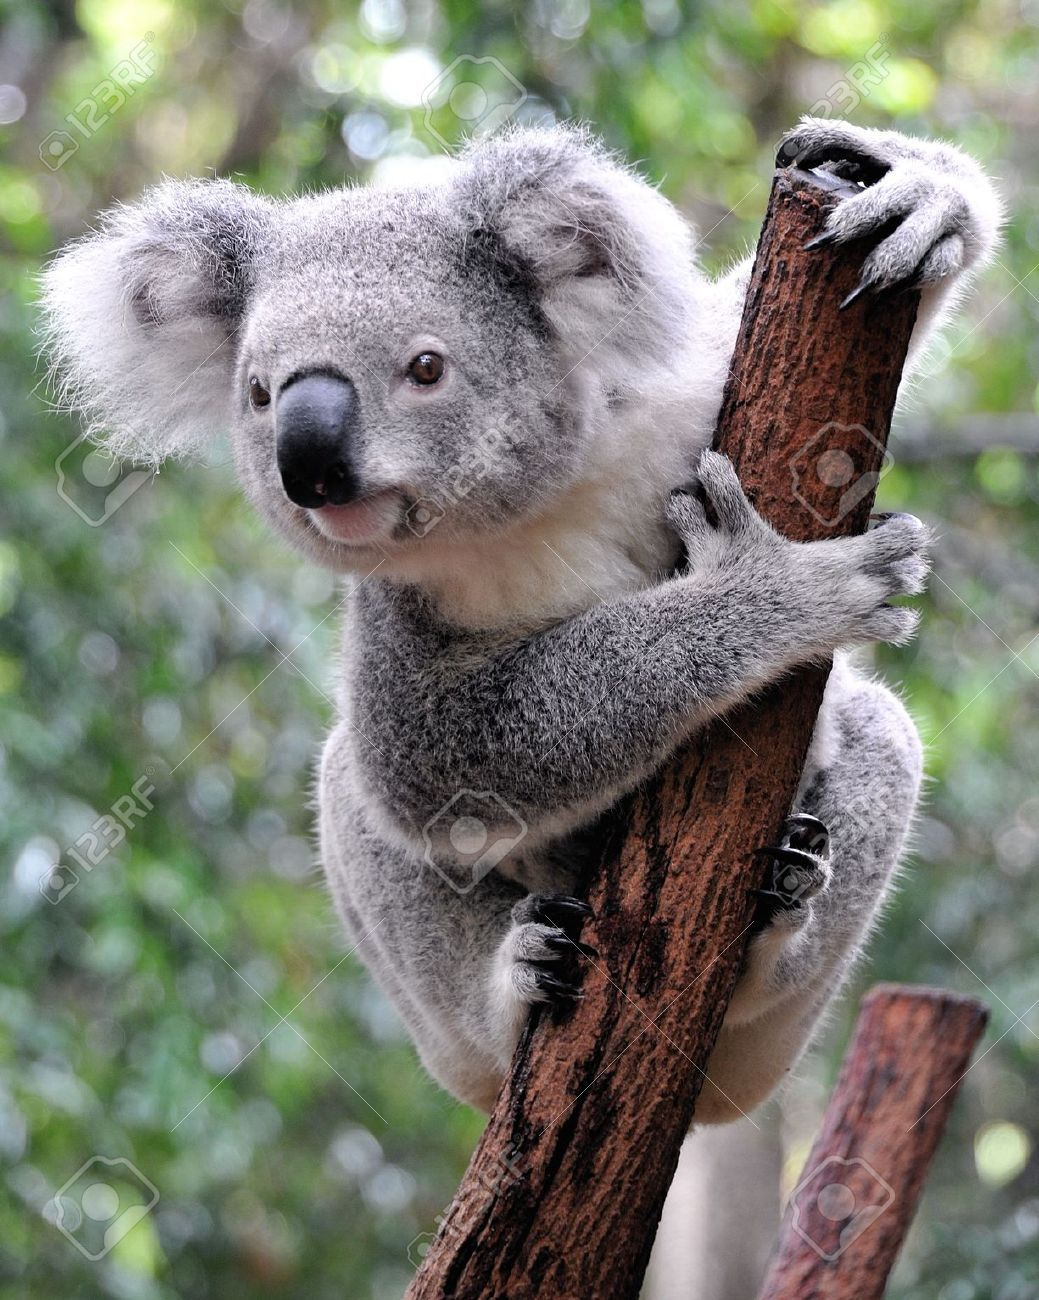 Koala Images, Stock Pictures, Royalty Free Koala Photos